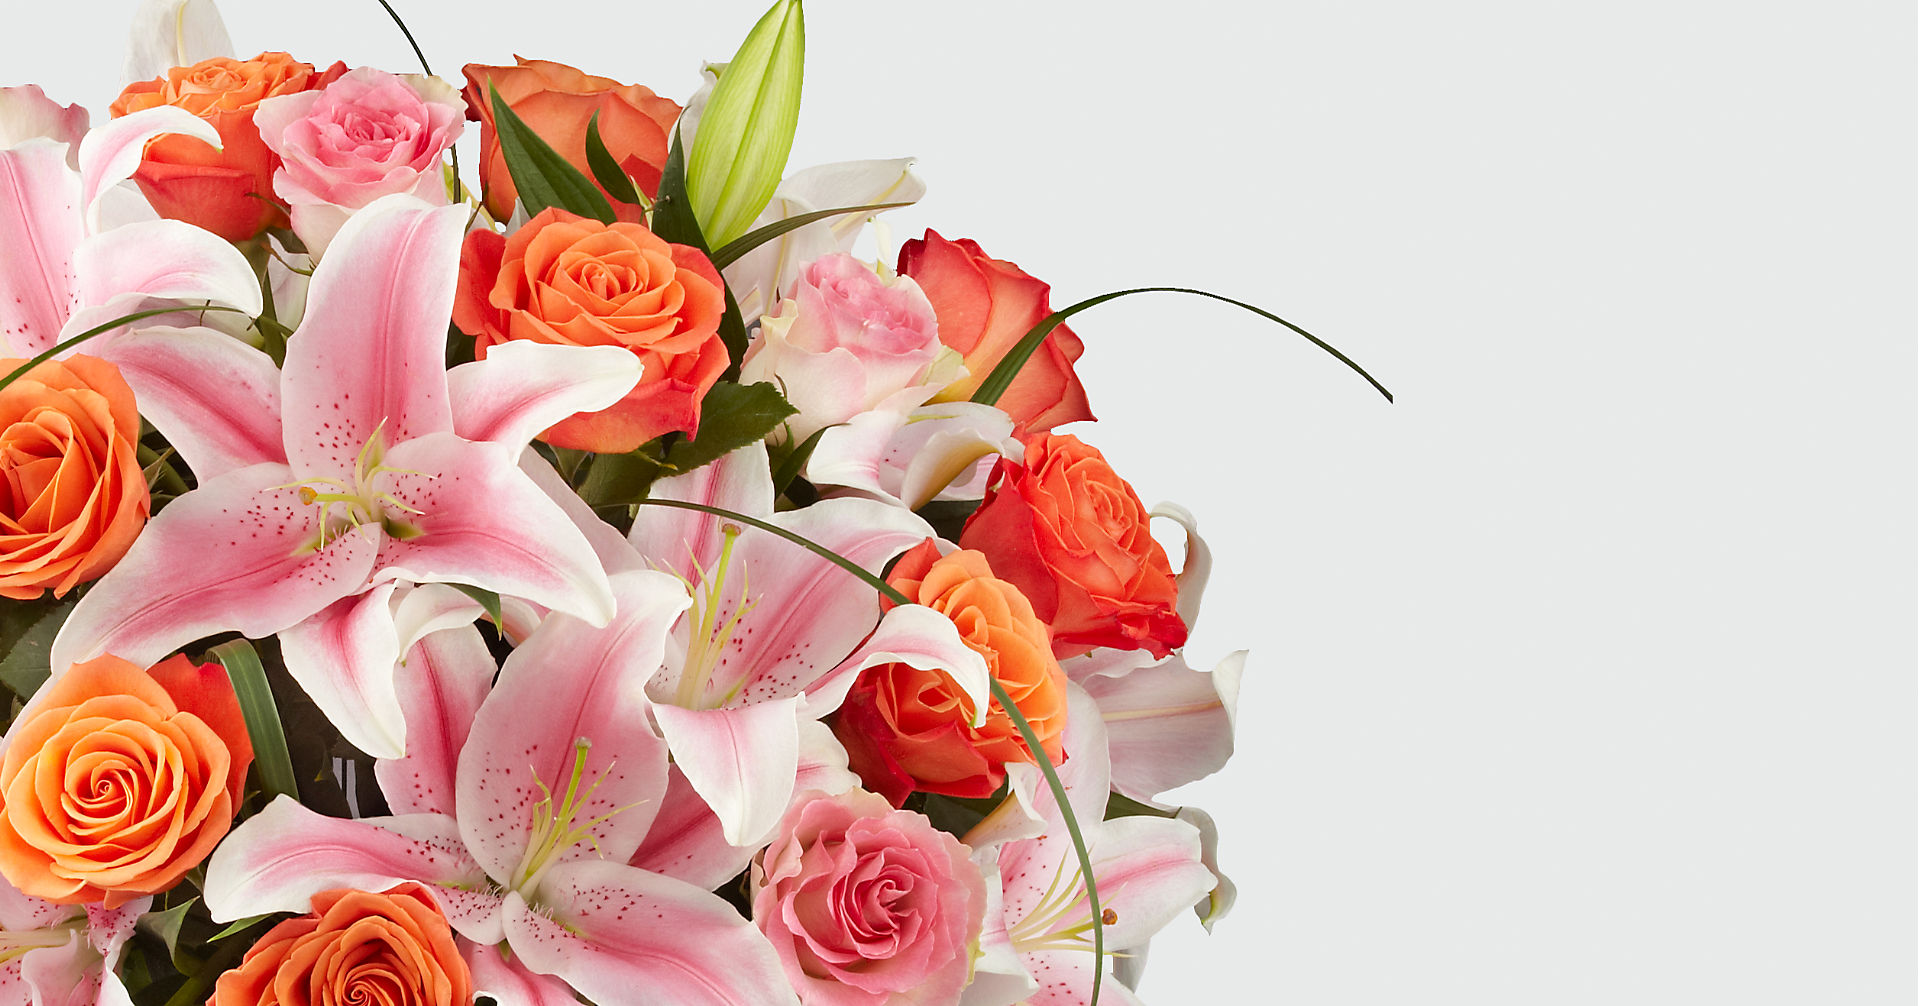 Sweetly Stunning™ Luxury Bouquet - Image 3 Of 4